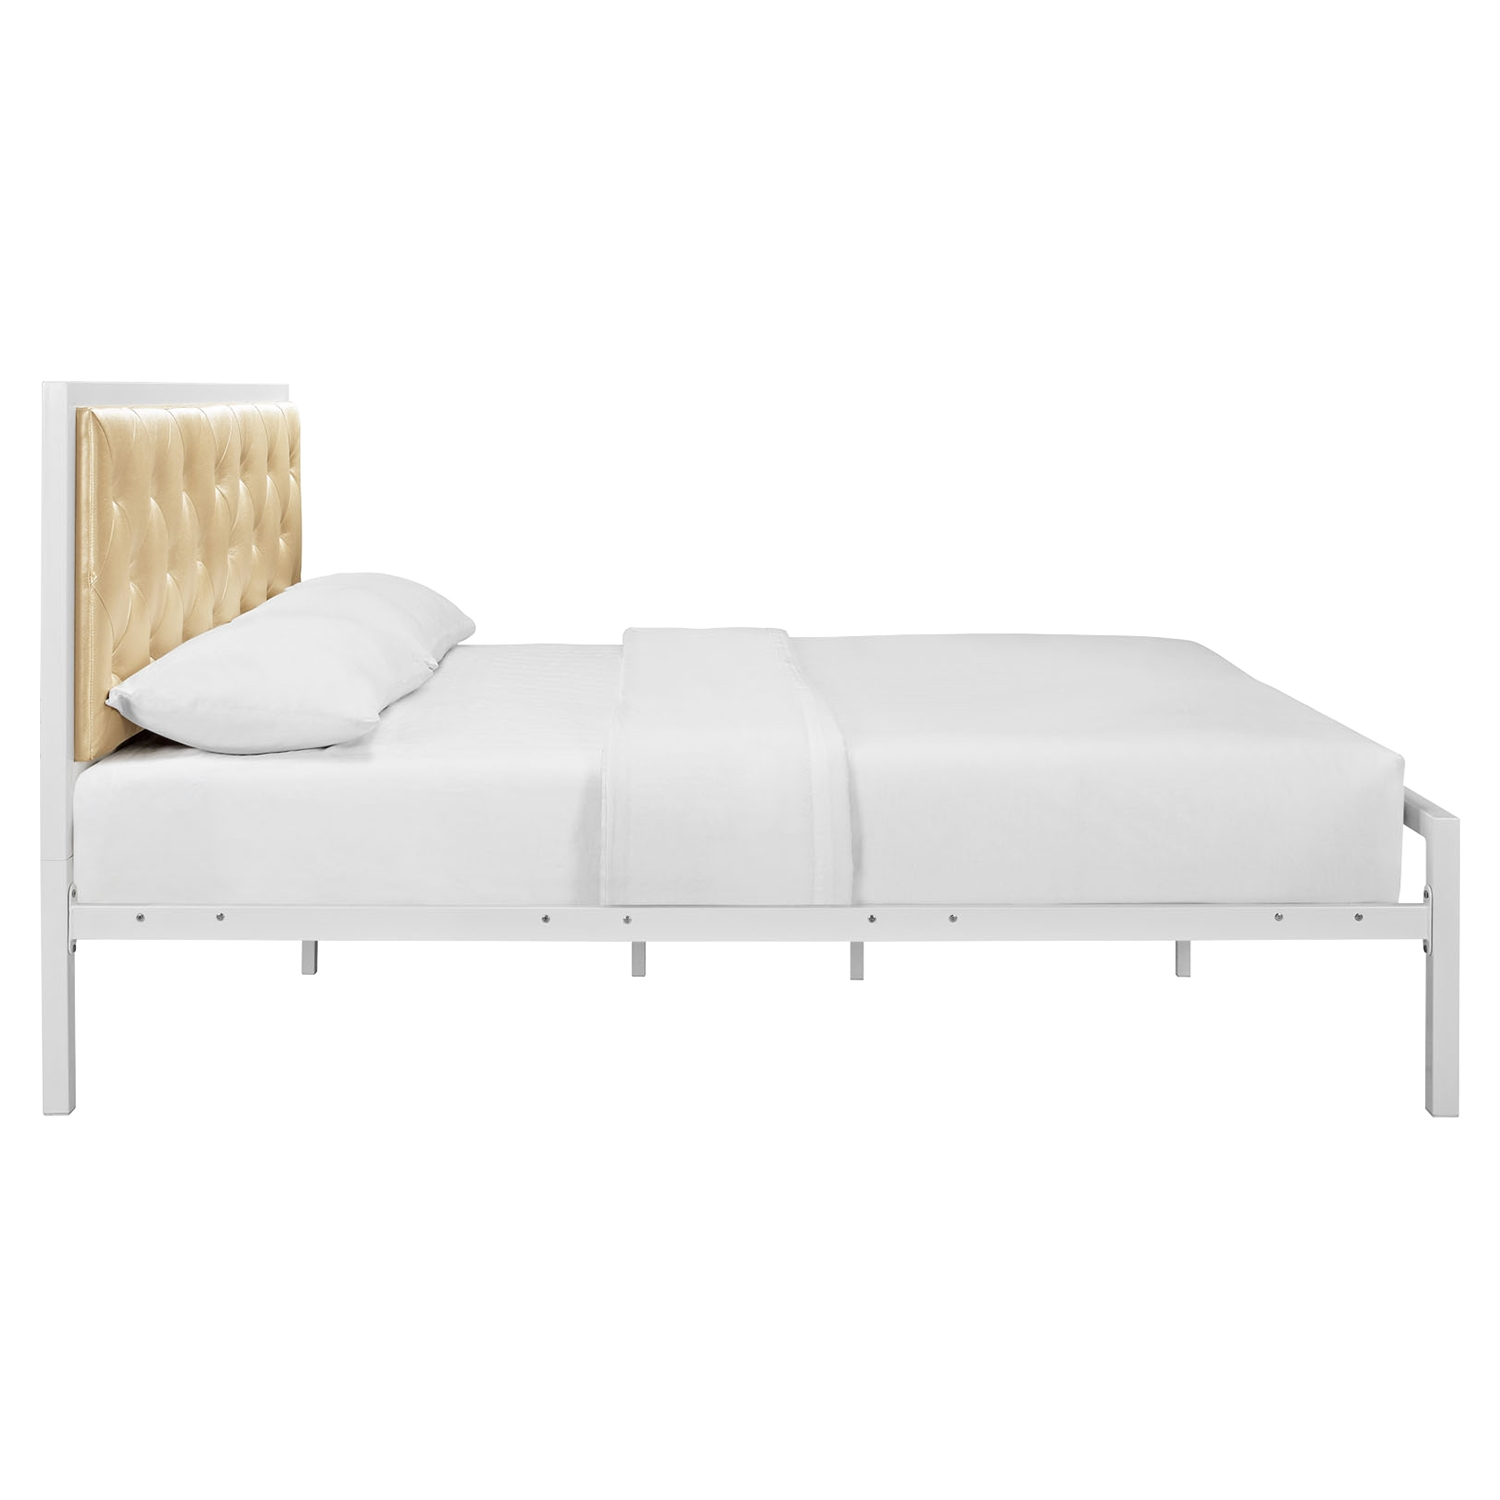 Mia Tufted Faux Leather Bed - White Champagne - EEI-MOD-518-WHI-CHA-SET